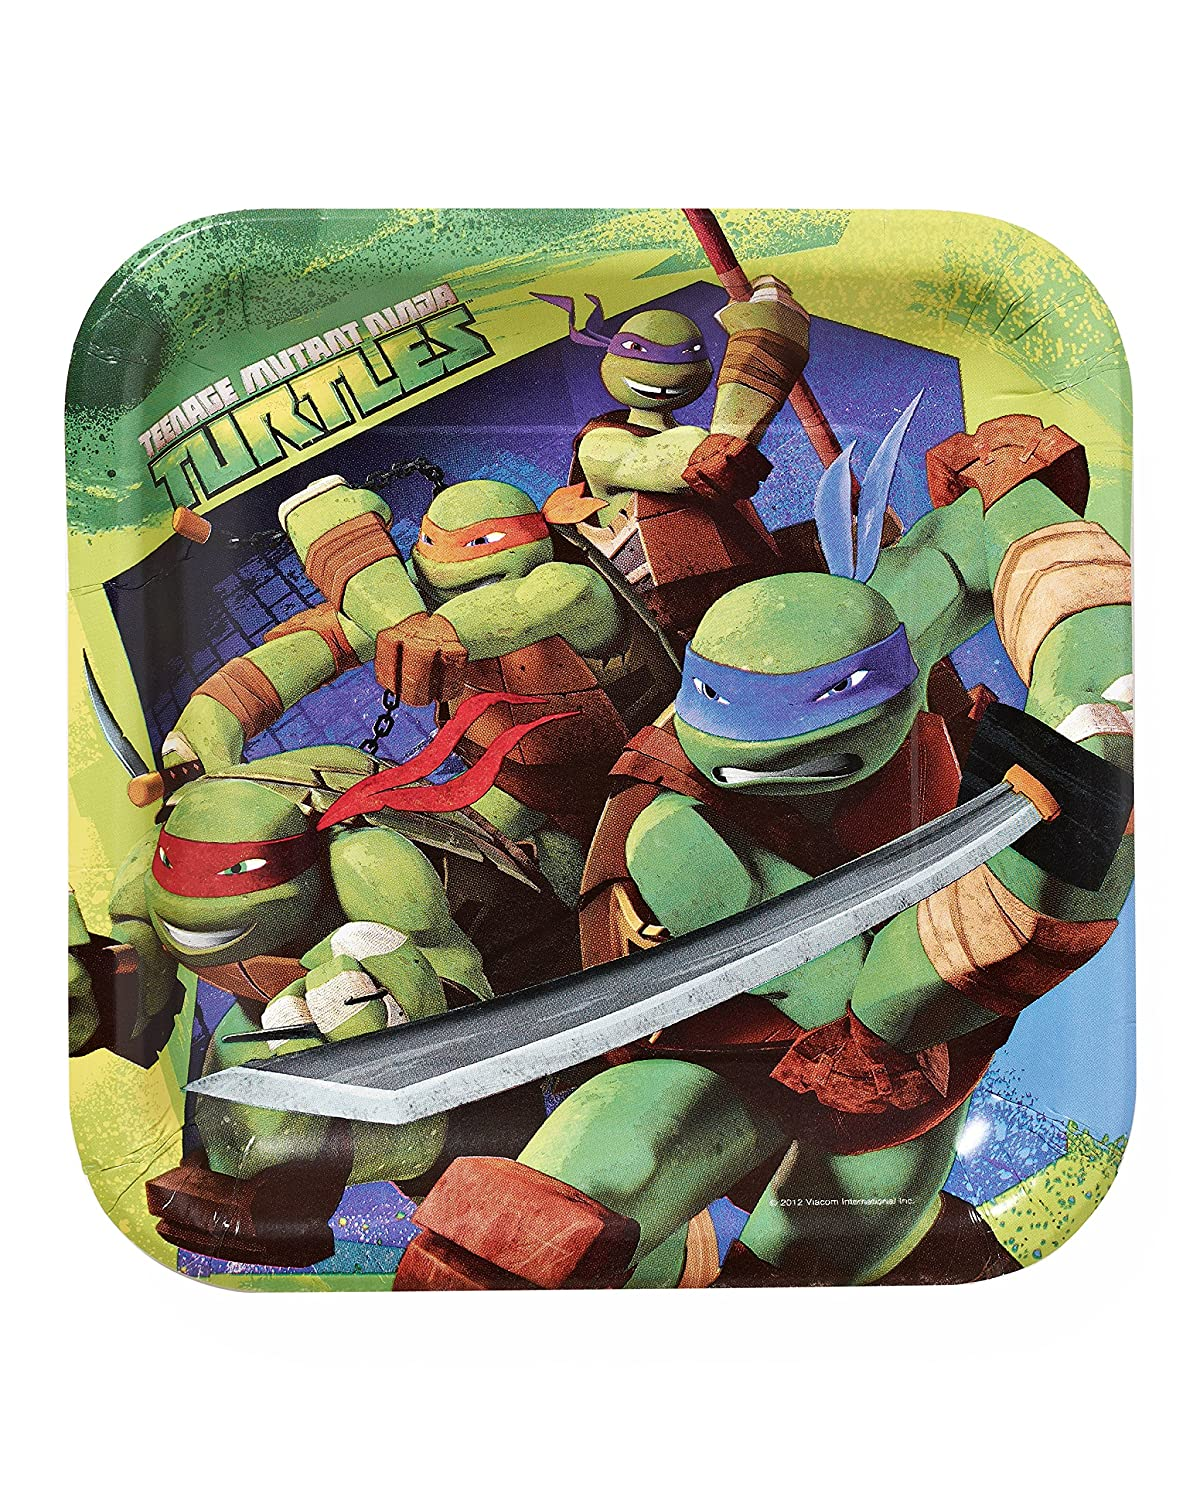 American Greetings Teenage Mutant Ninja Turtles Paper Dinner Plates, 8-Count